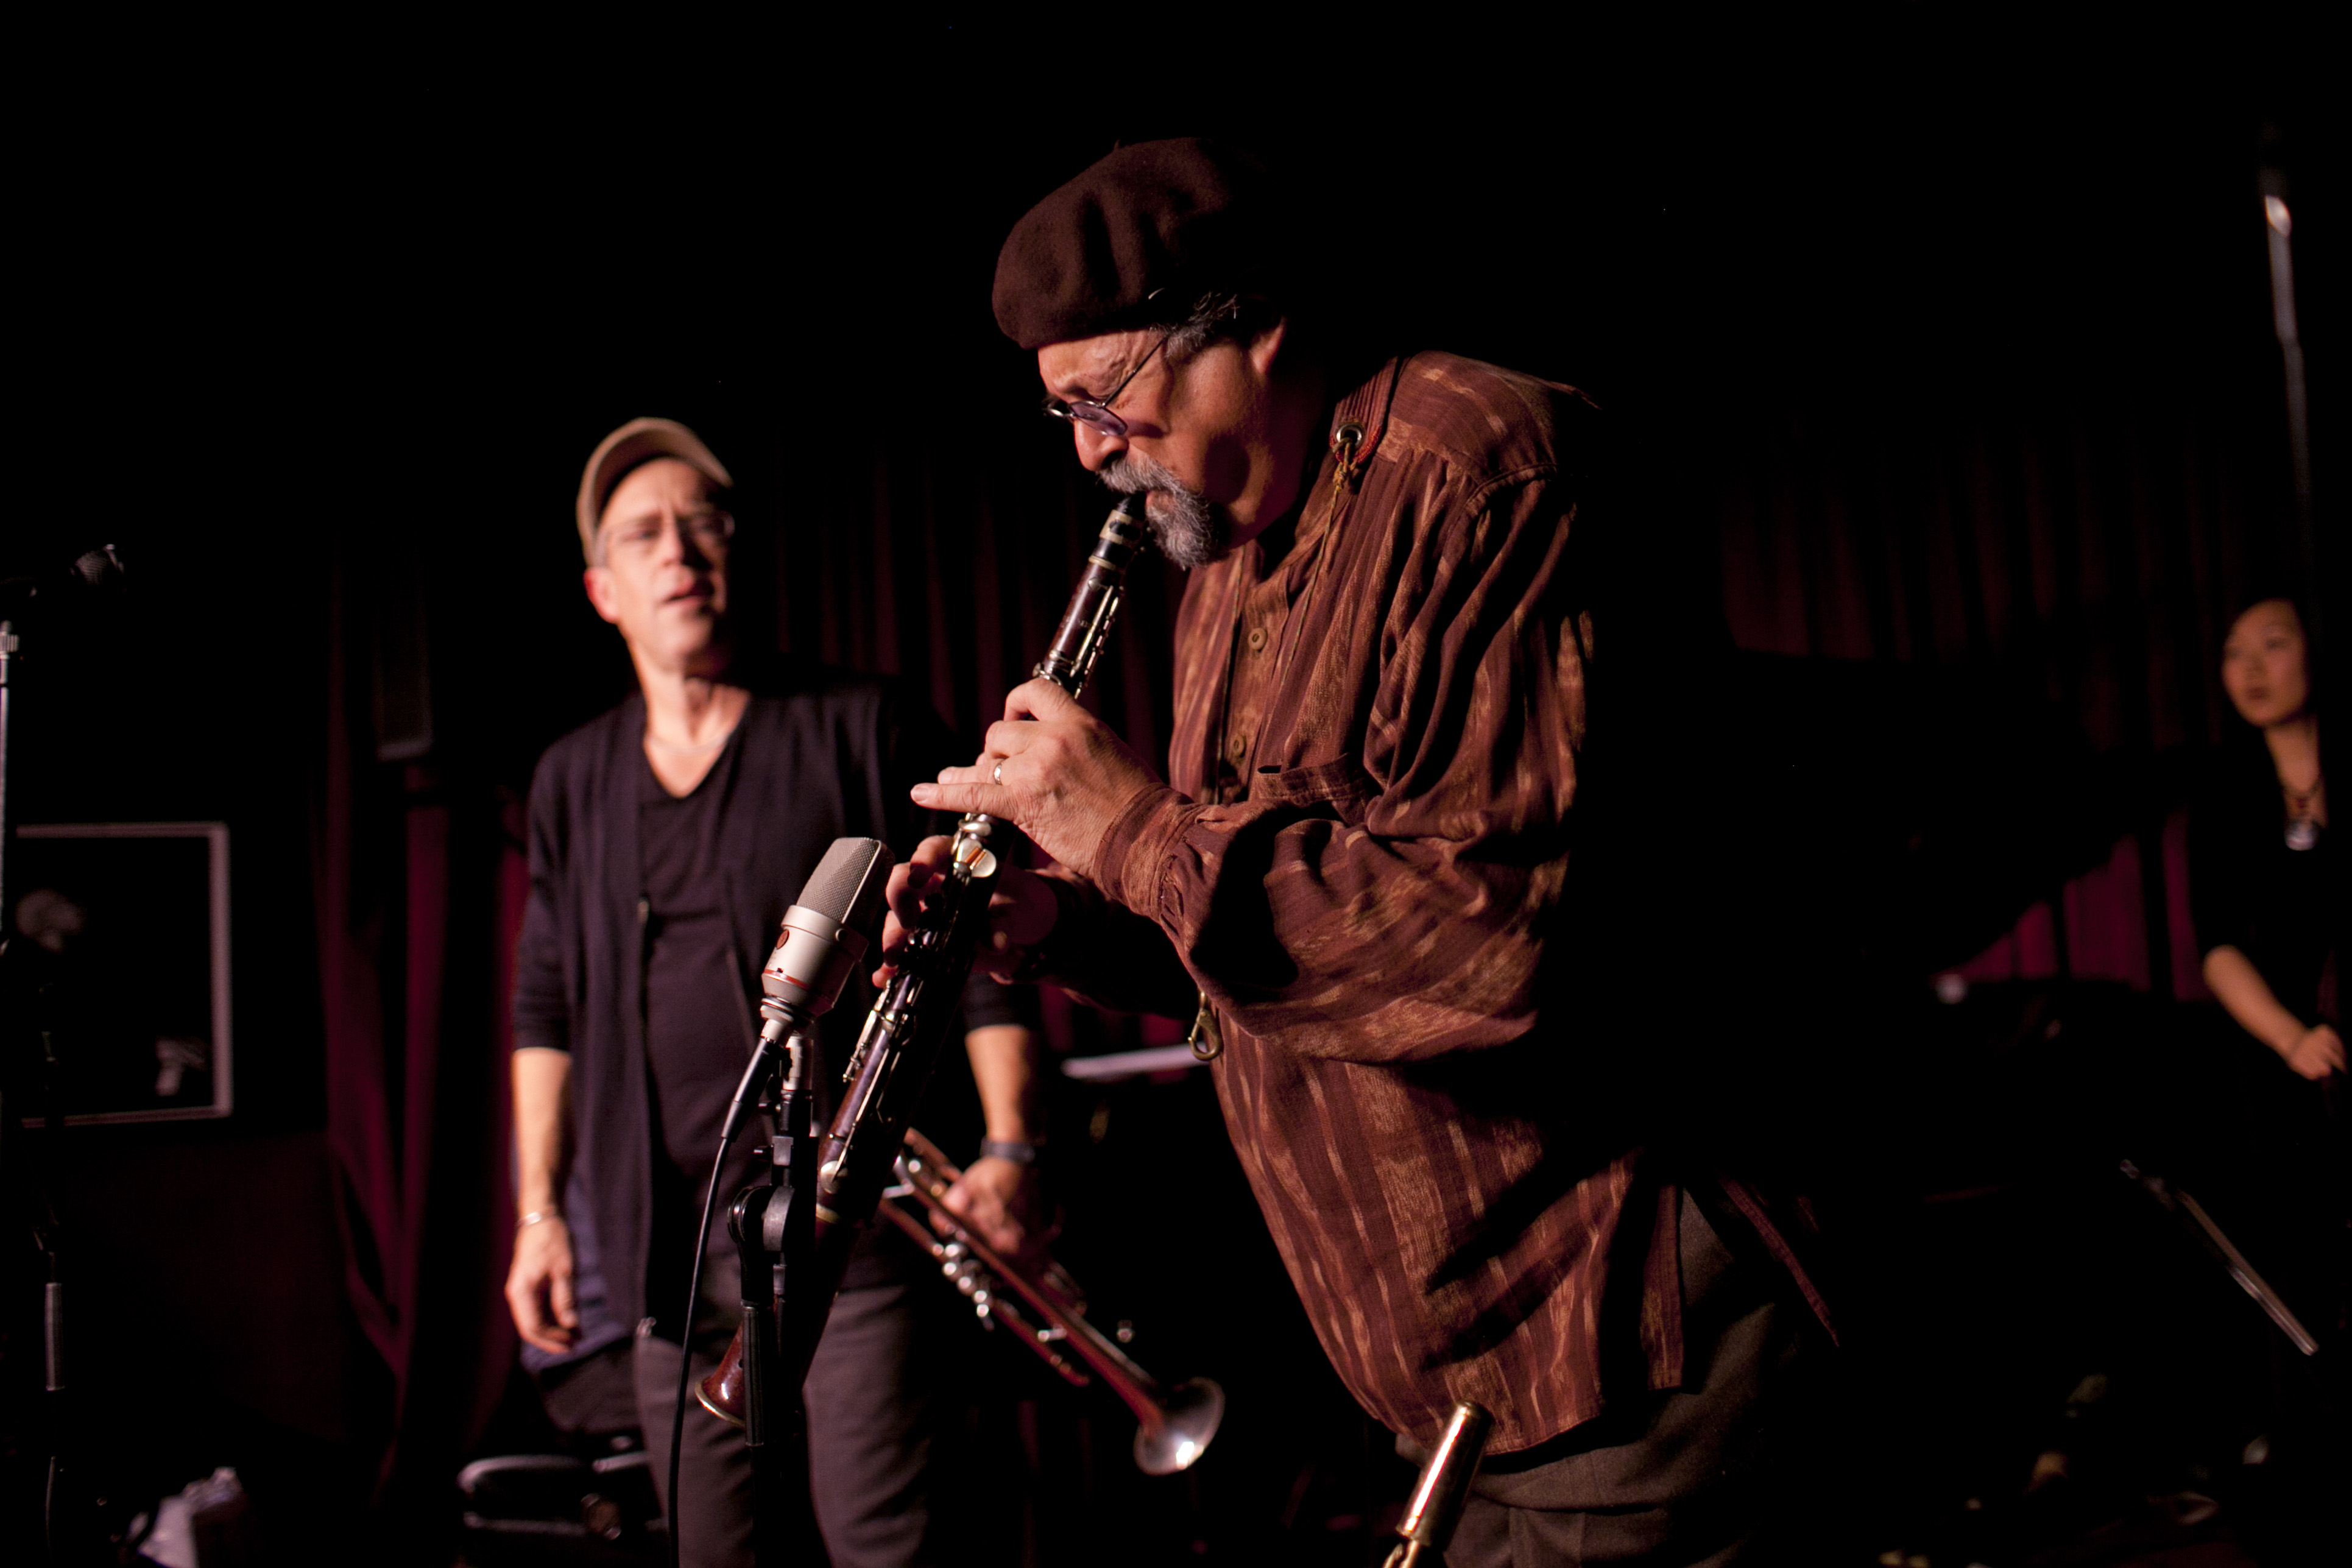 Joe Lovano brought his tarogato, a Hungarian clarinet-like instrument.